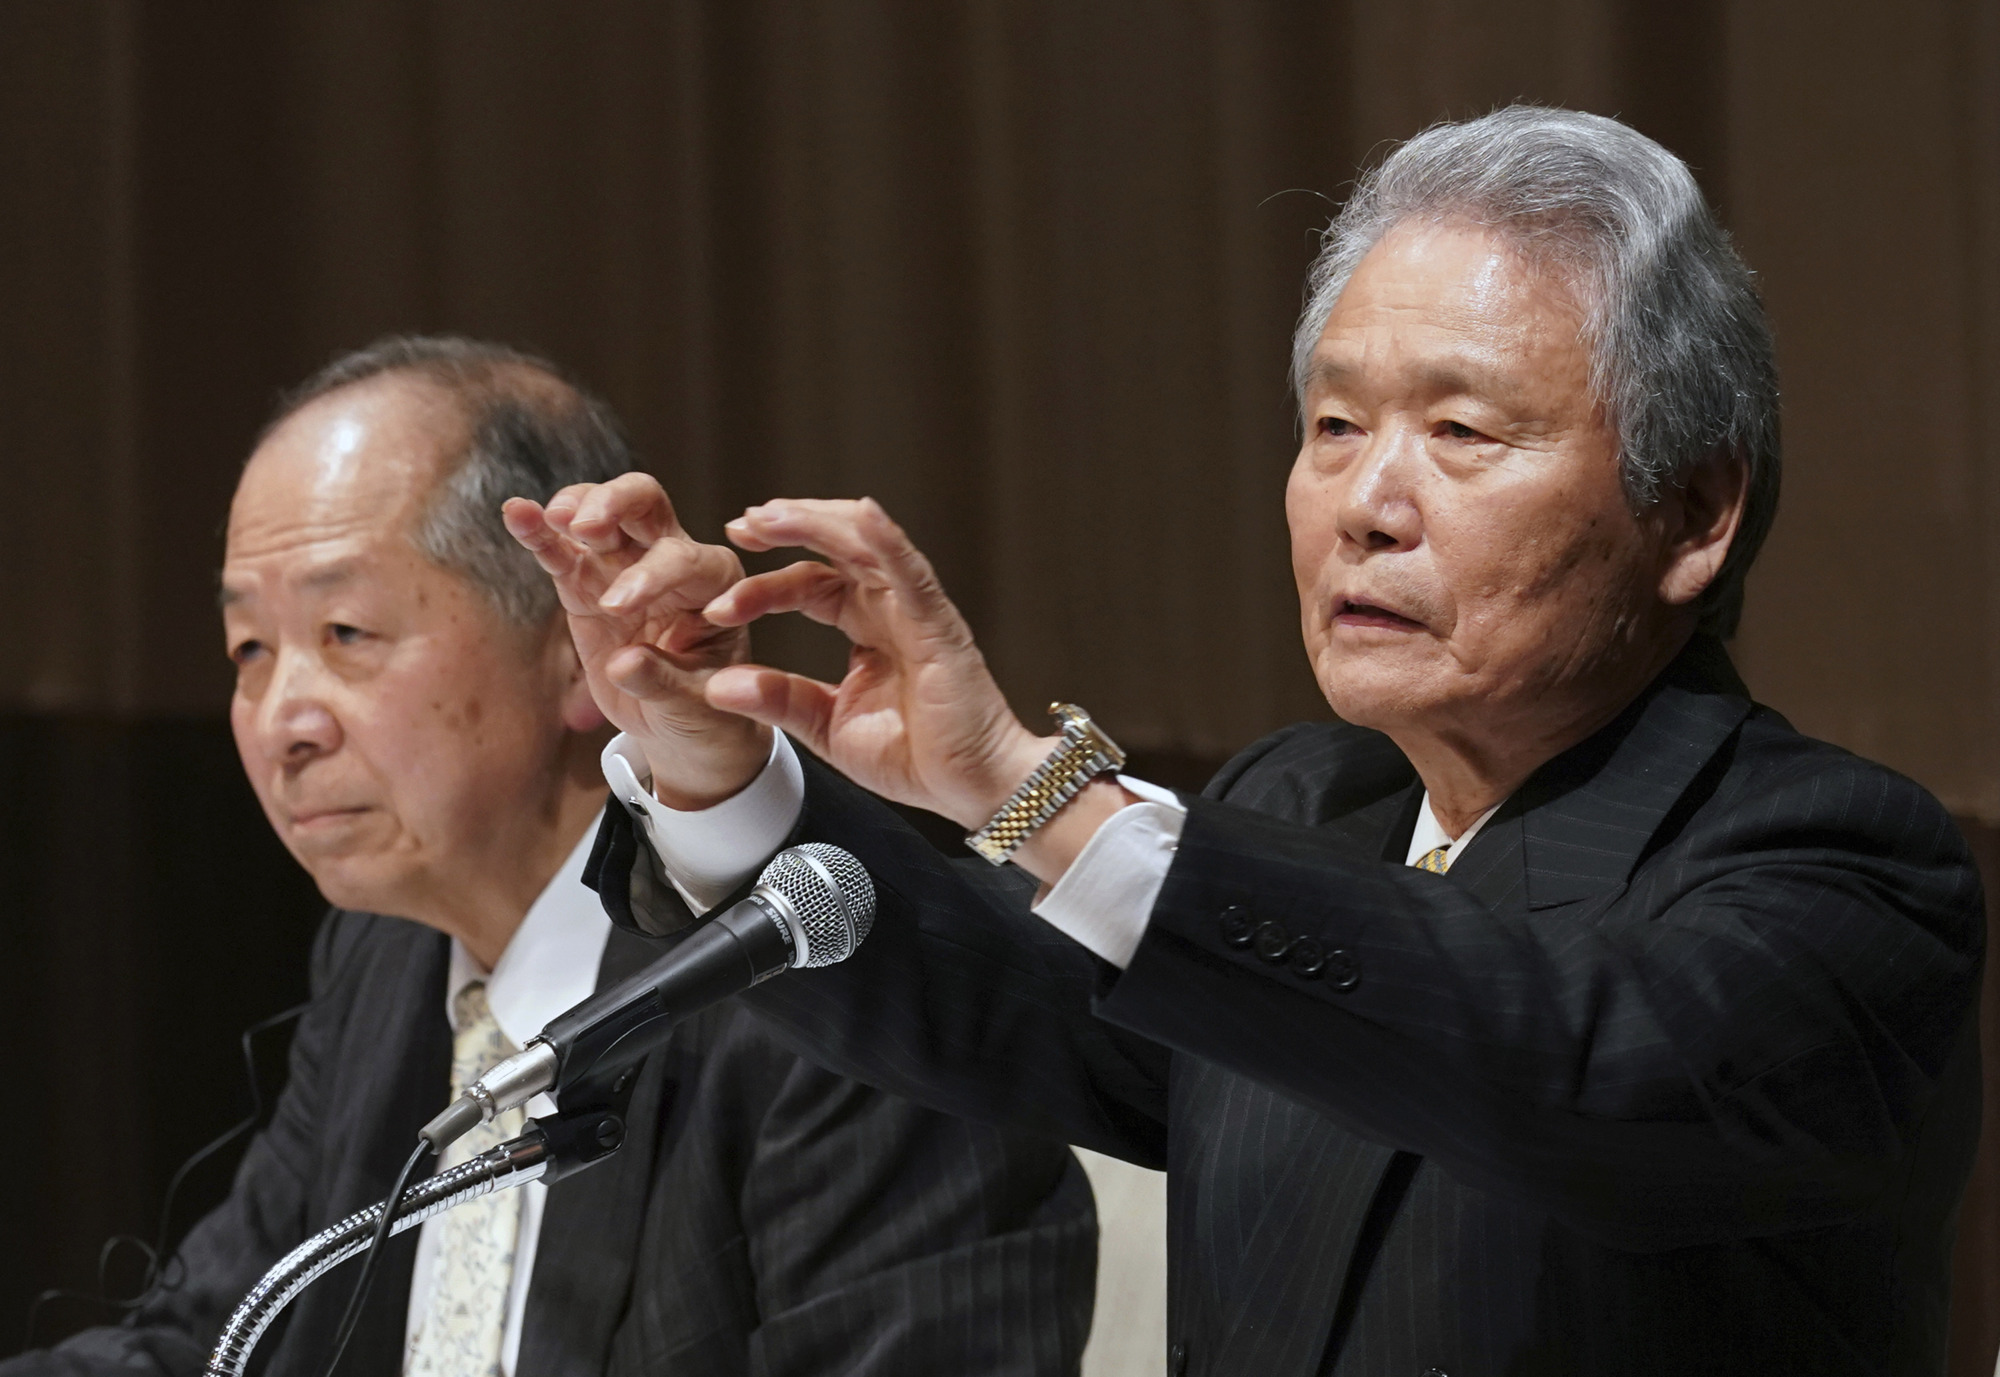 Co-chairs of the Special Committee for Improving Governance Sadayuki Sakakibara (right) and Seiichiro Nishioka answer questions during a press conference in Yokohama Wednesday.   AP